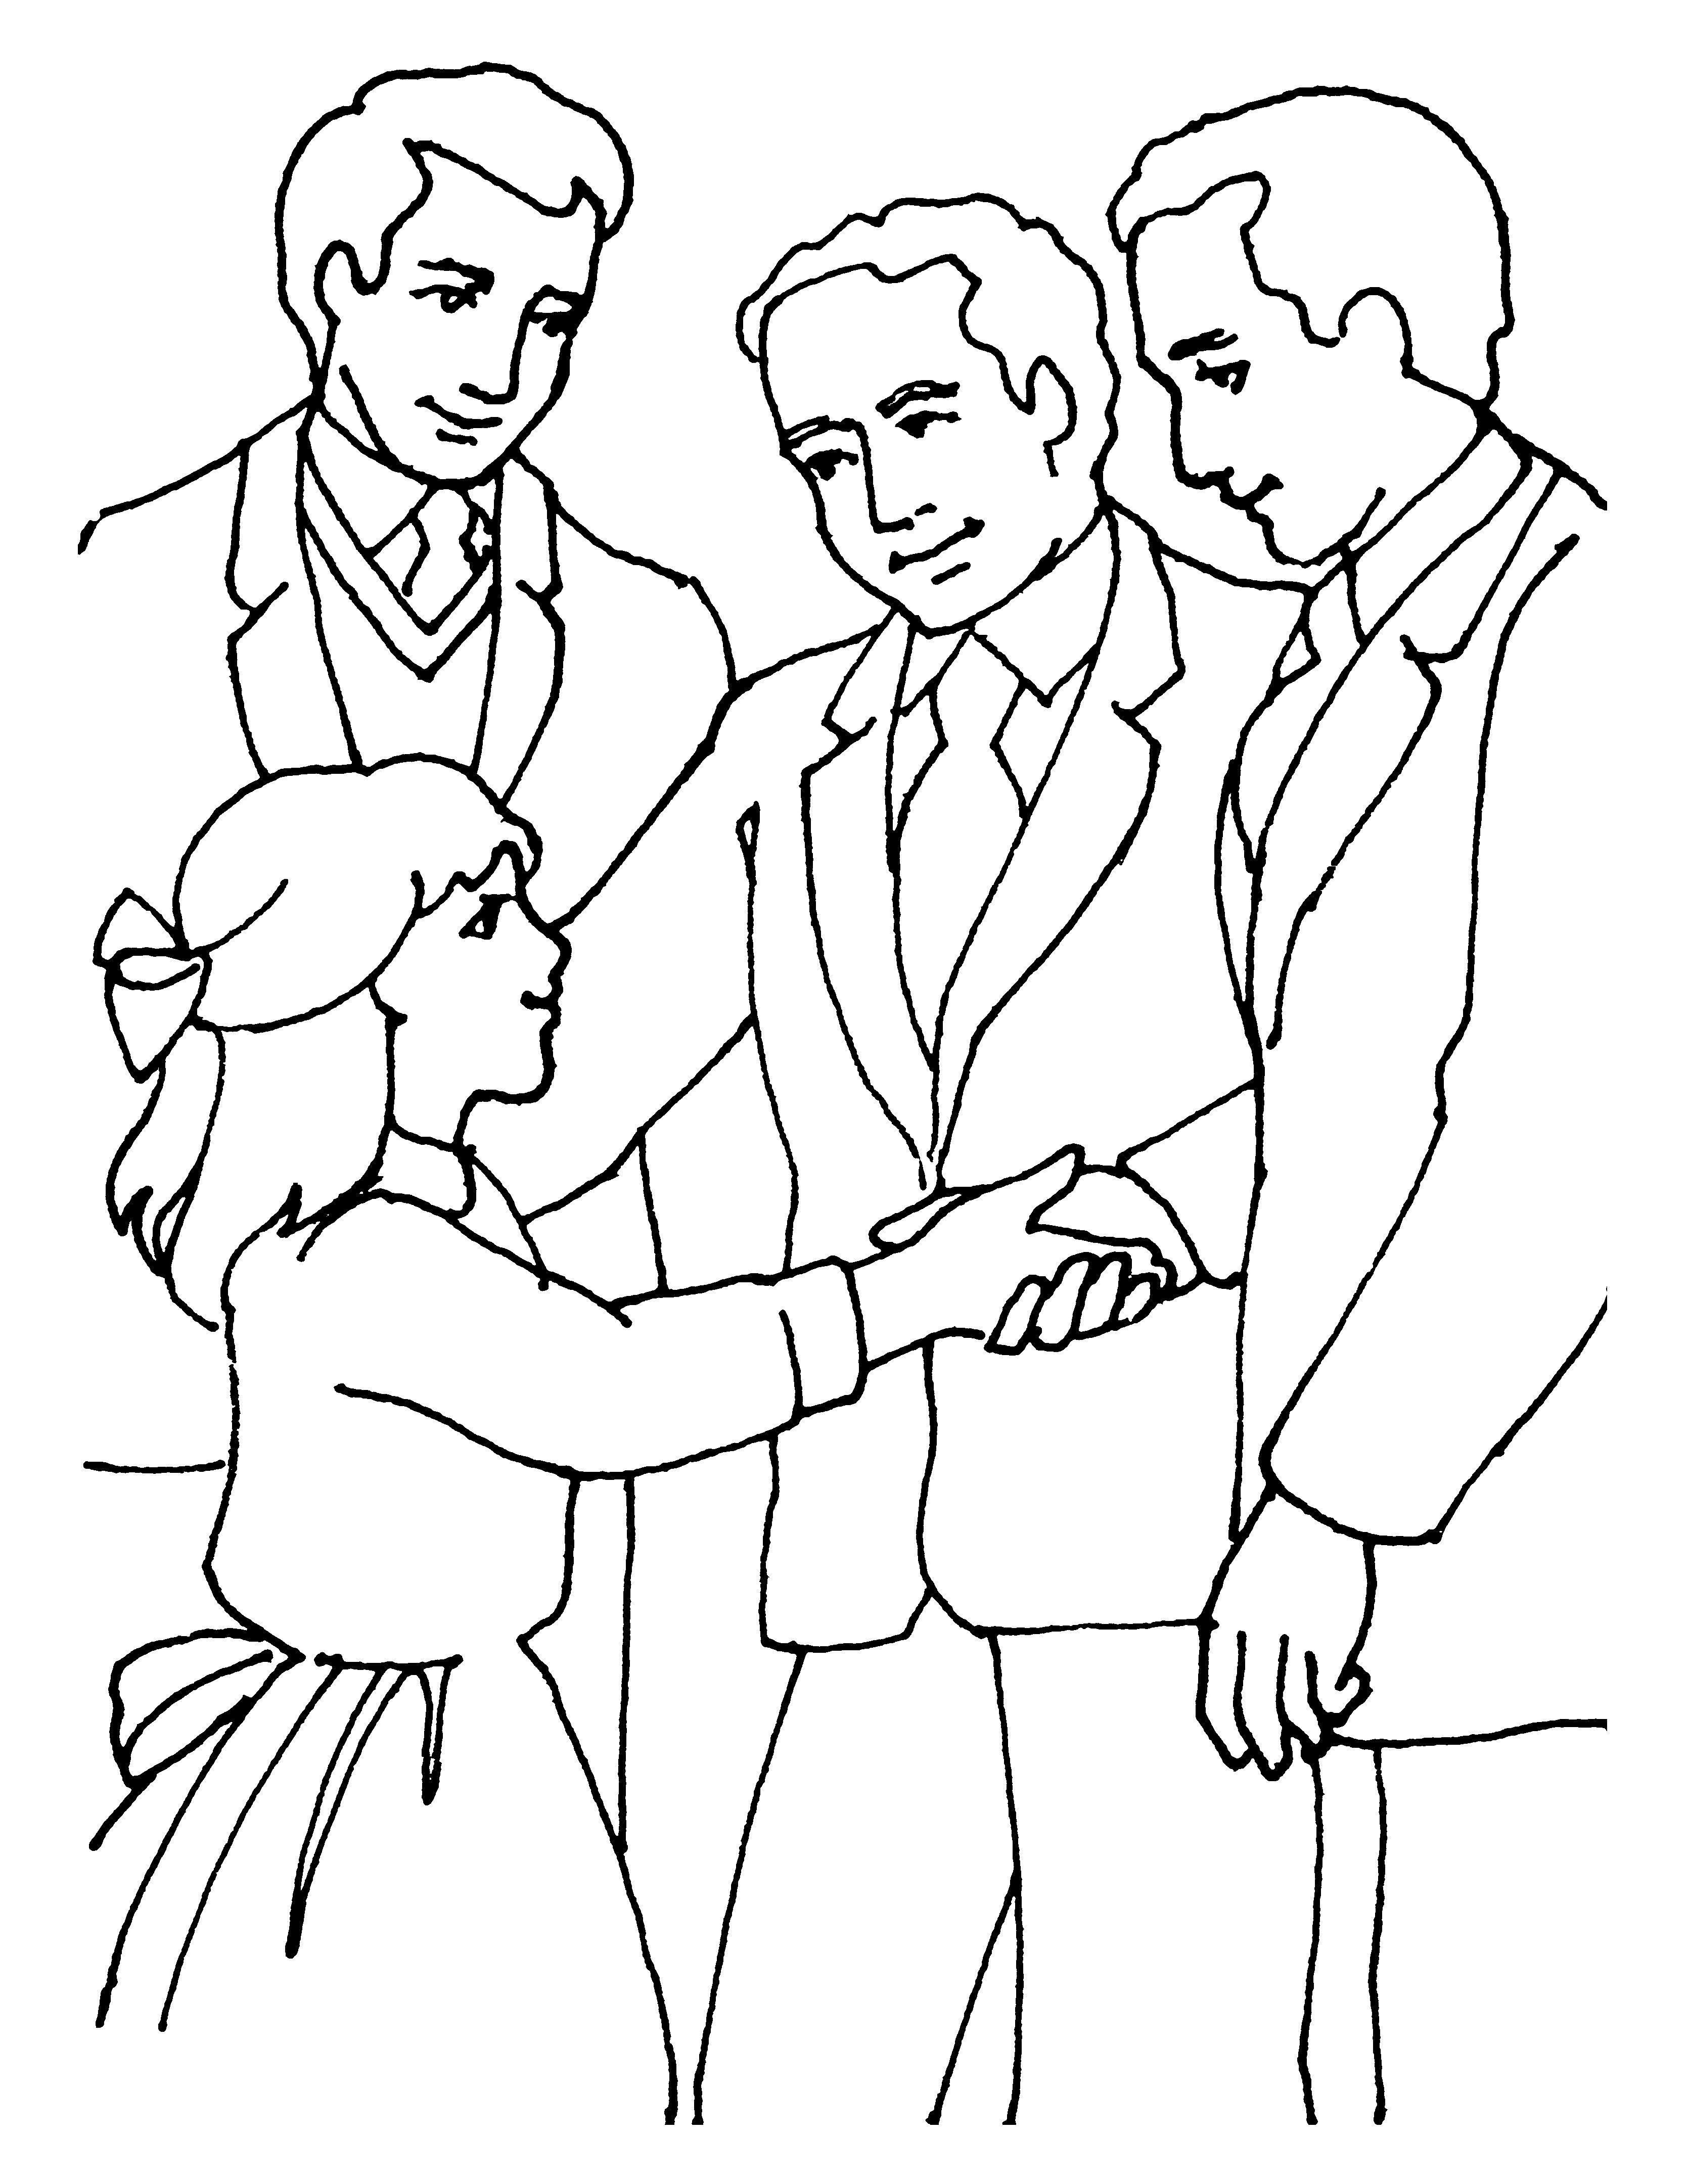 A young girl shakes hands with priesthood leaders.